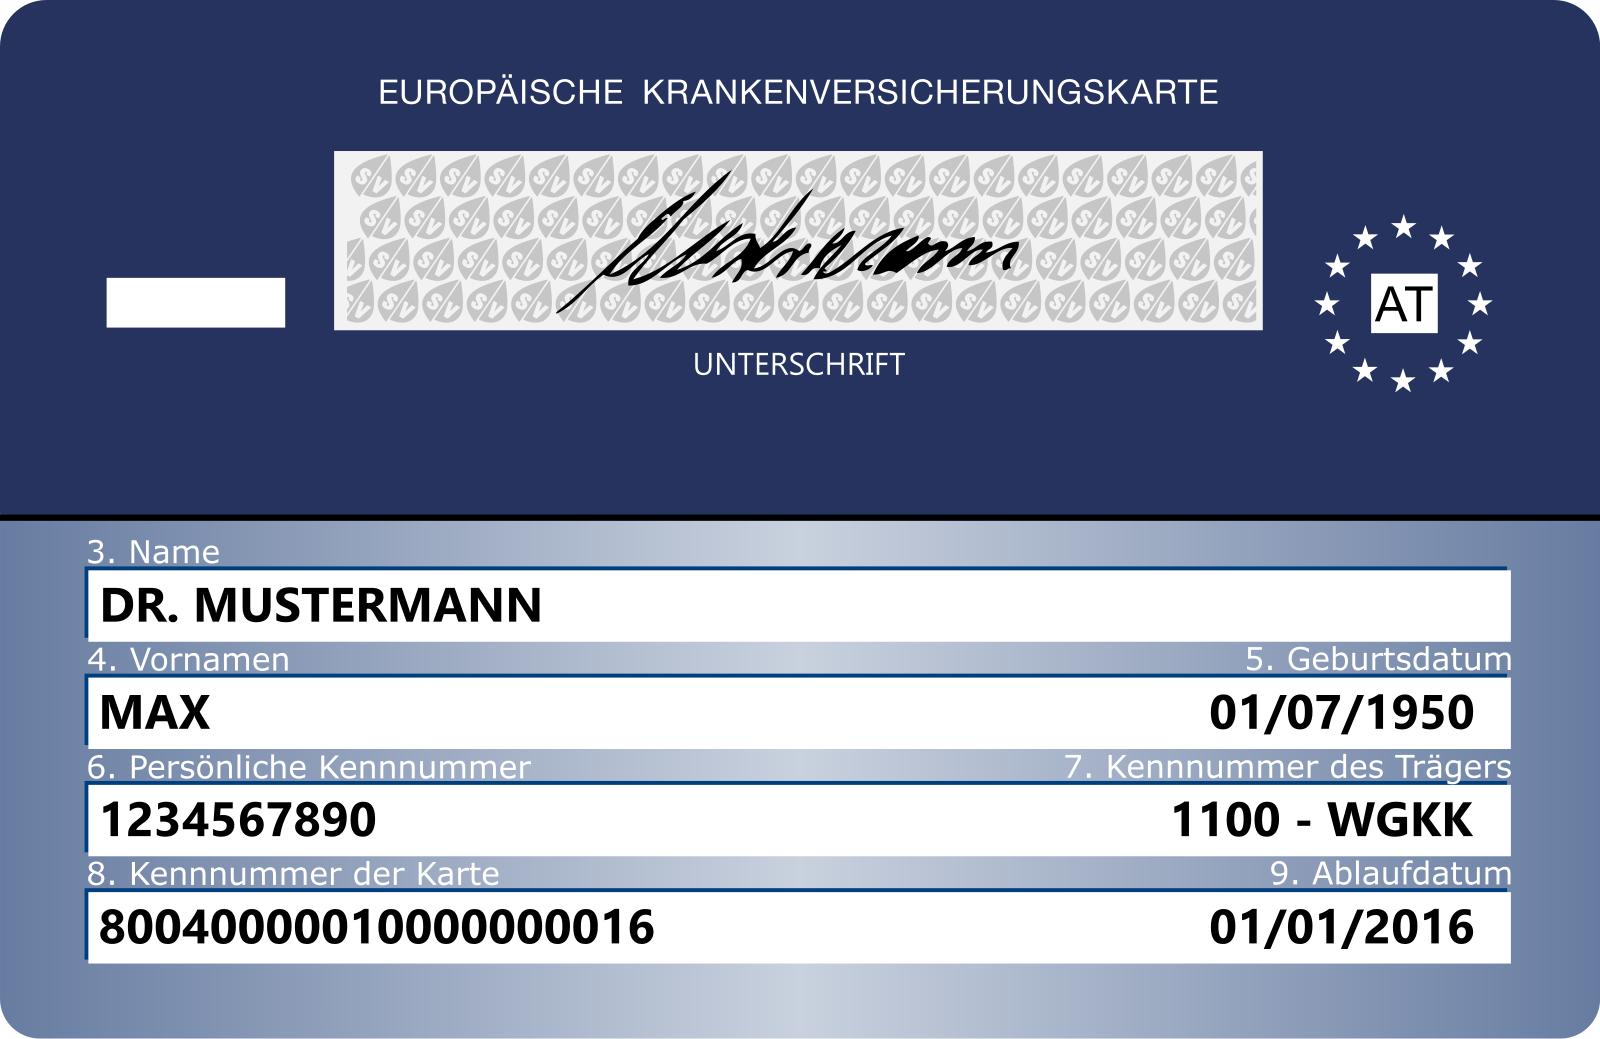 European Health Insurance Card - EHIC